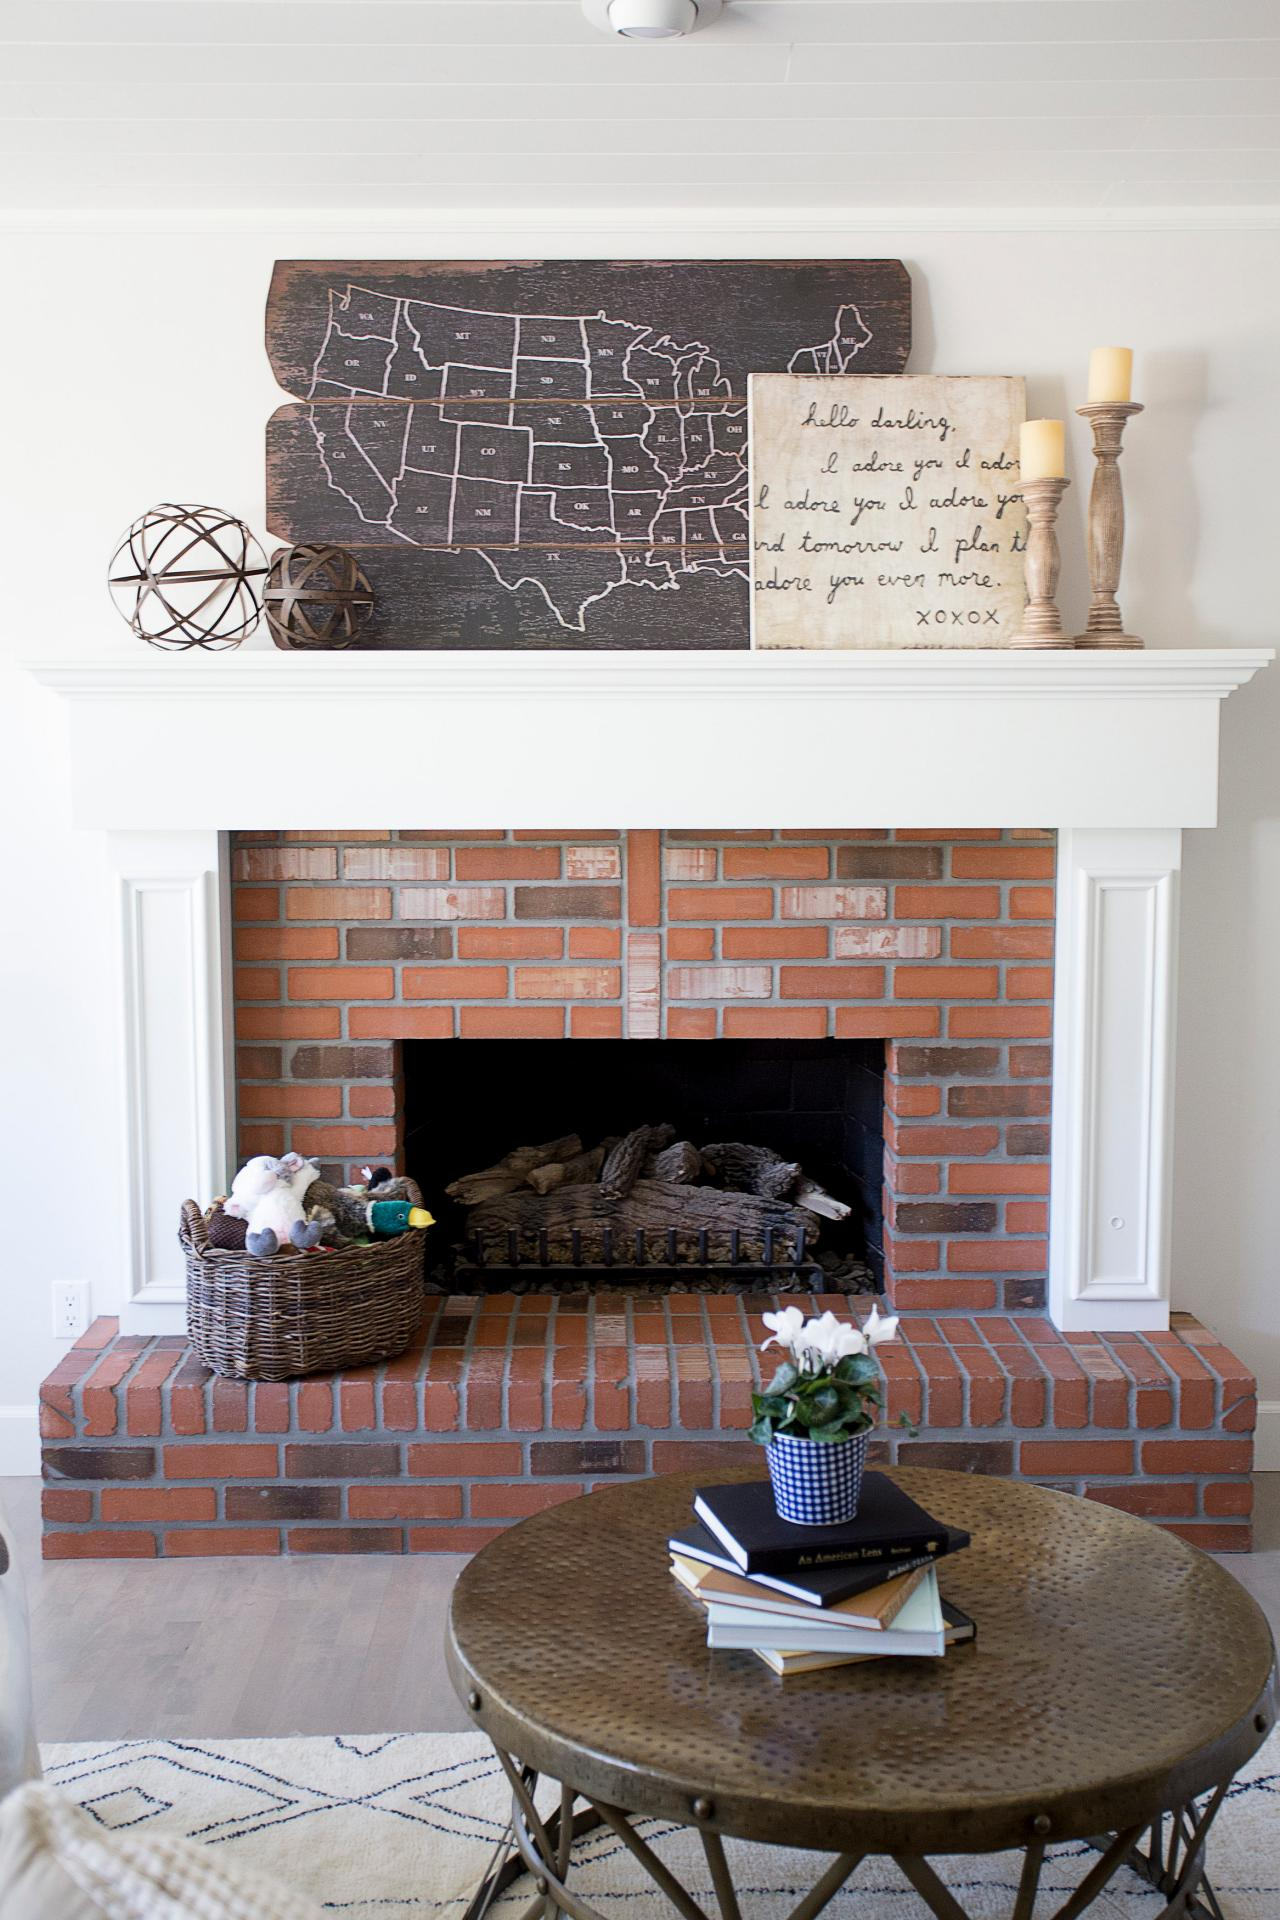 How To Decorate Fireplace 15 Ideas For Decorating Your Mantel Year Round Hgtv S Decorating